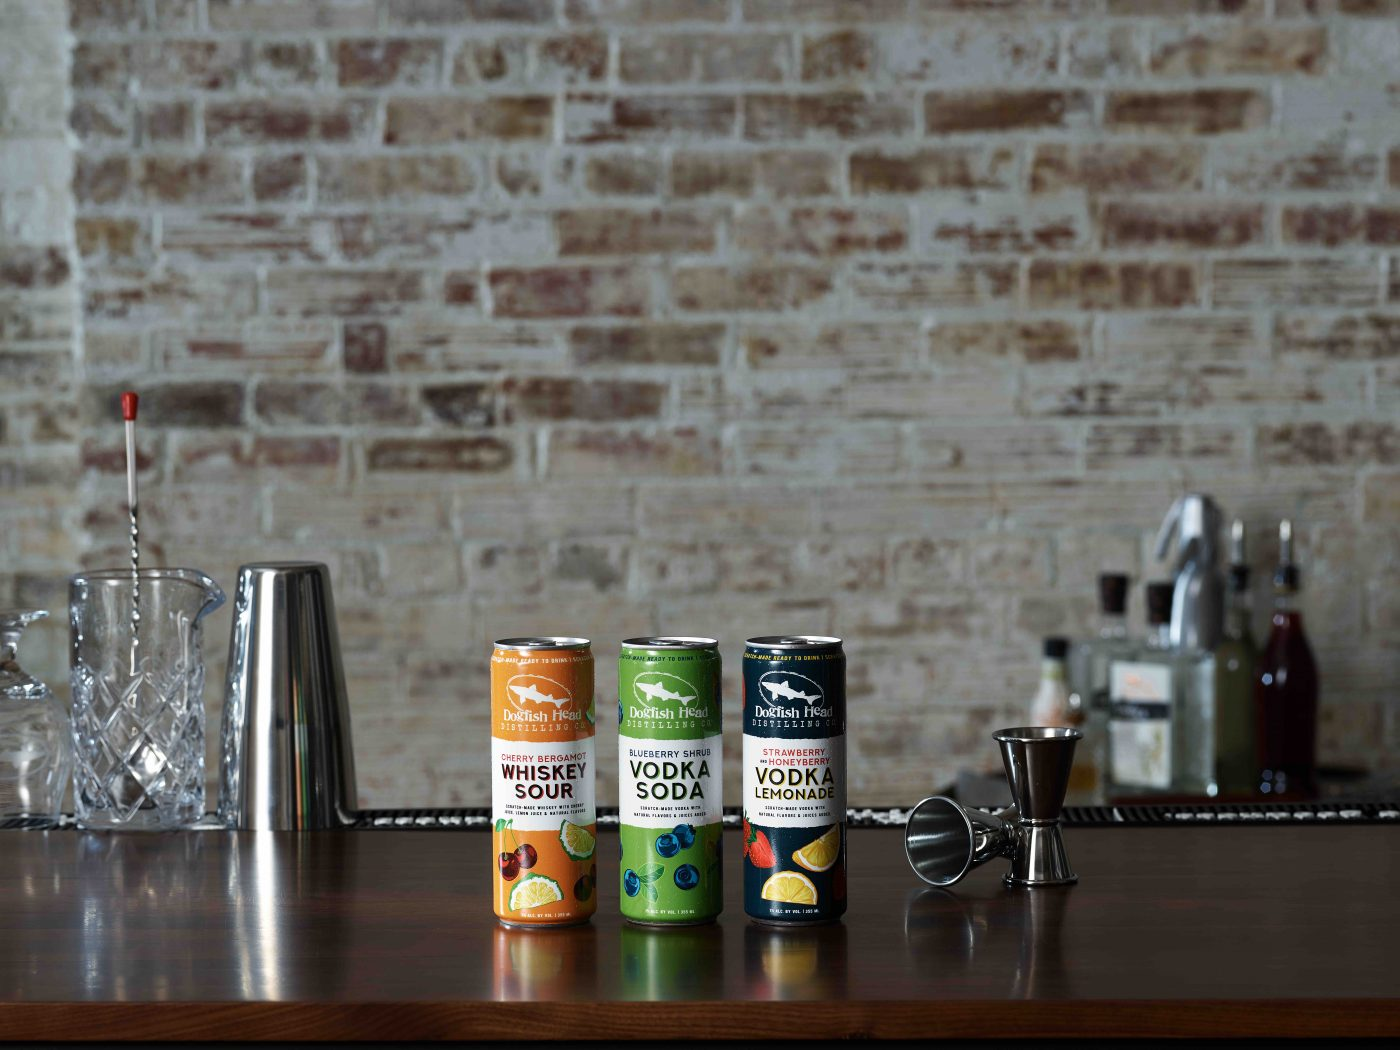 Dogfish Head Distilling Co. new lineup of ready-to-drink Canned Cocktails. (image courtesy of Dogfish Head Craft Distilling Co.)